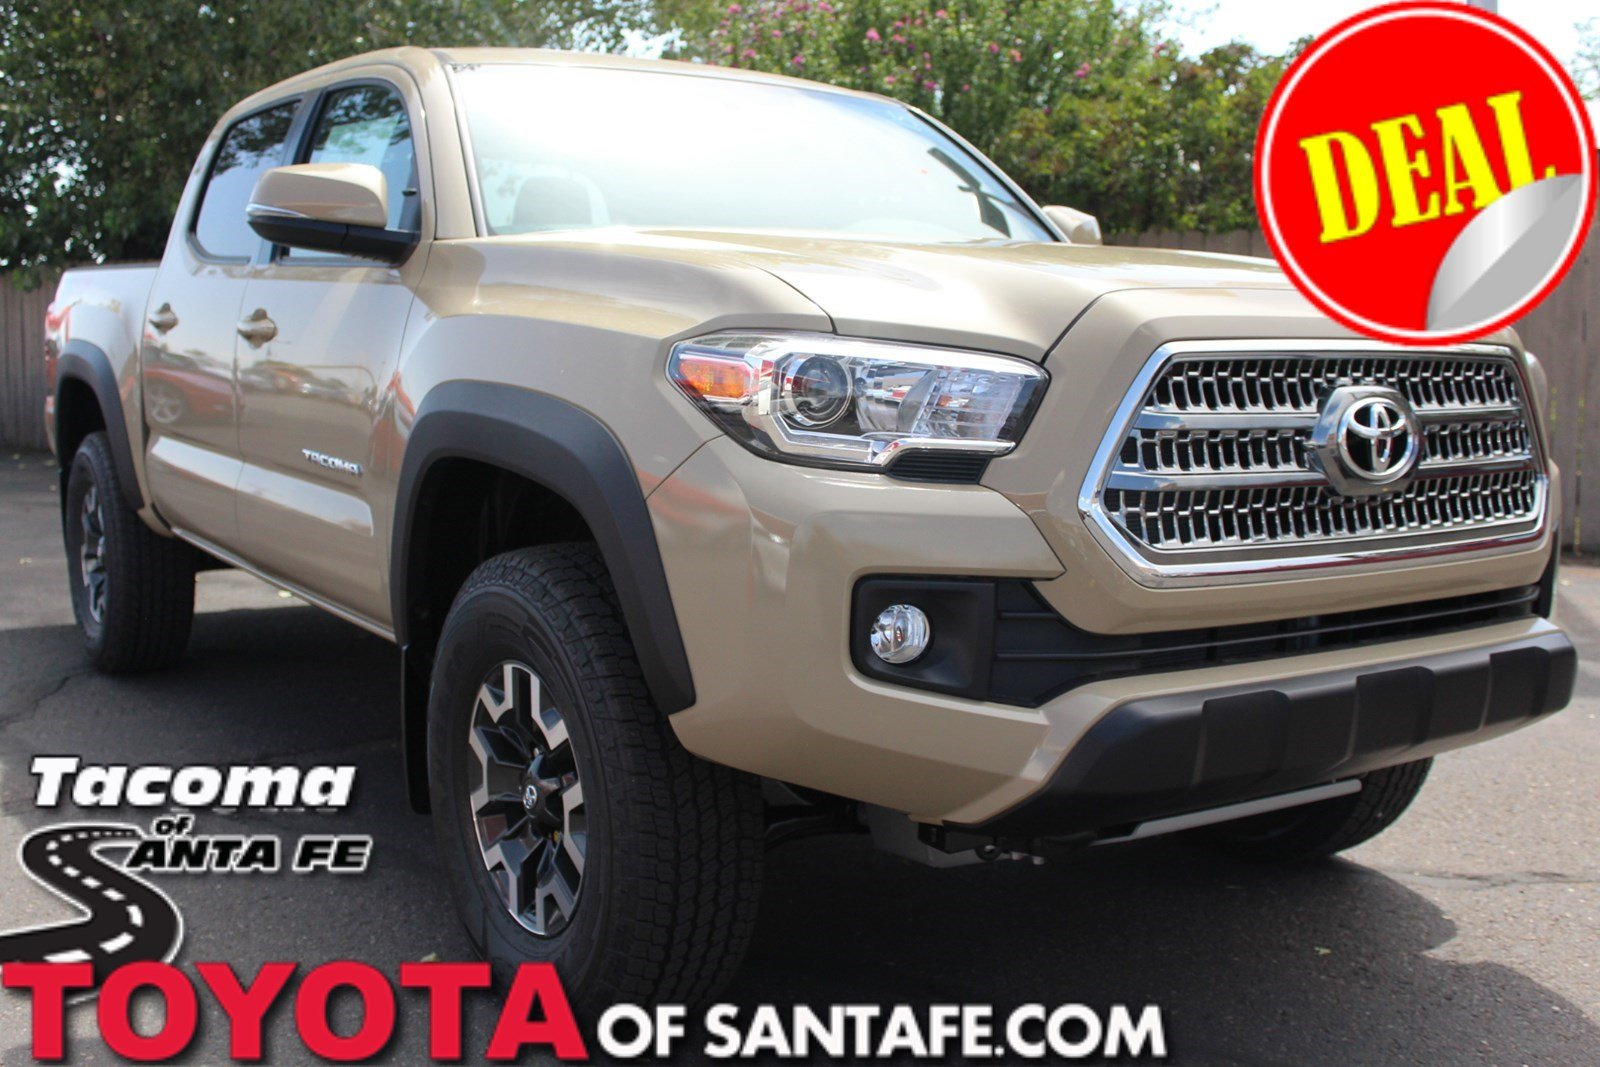 New 2017 Toyota Tacoma TRD Off Road Double Cab 5' Bed V6 4x4 AT Double Cab